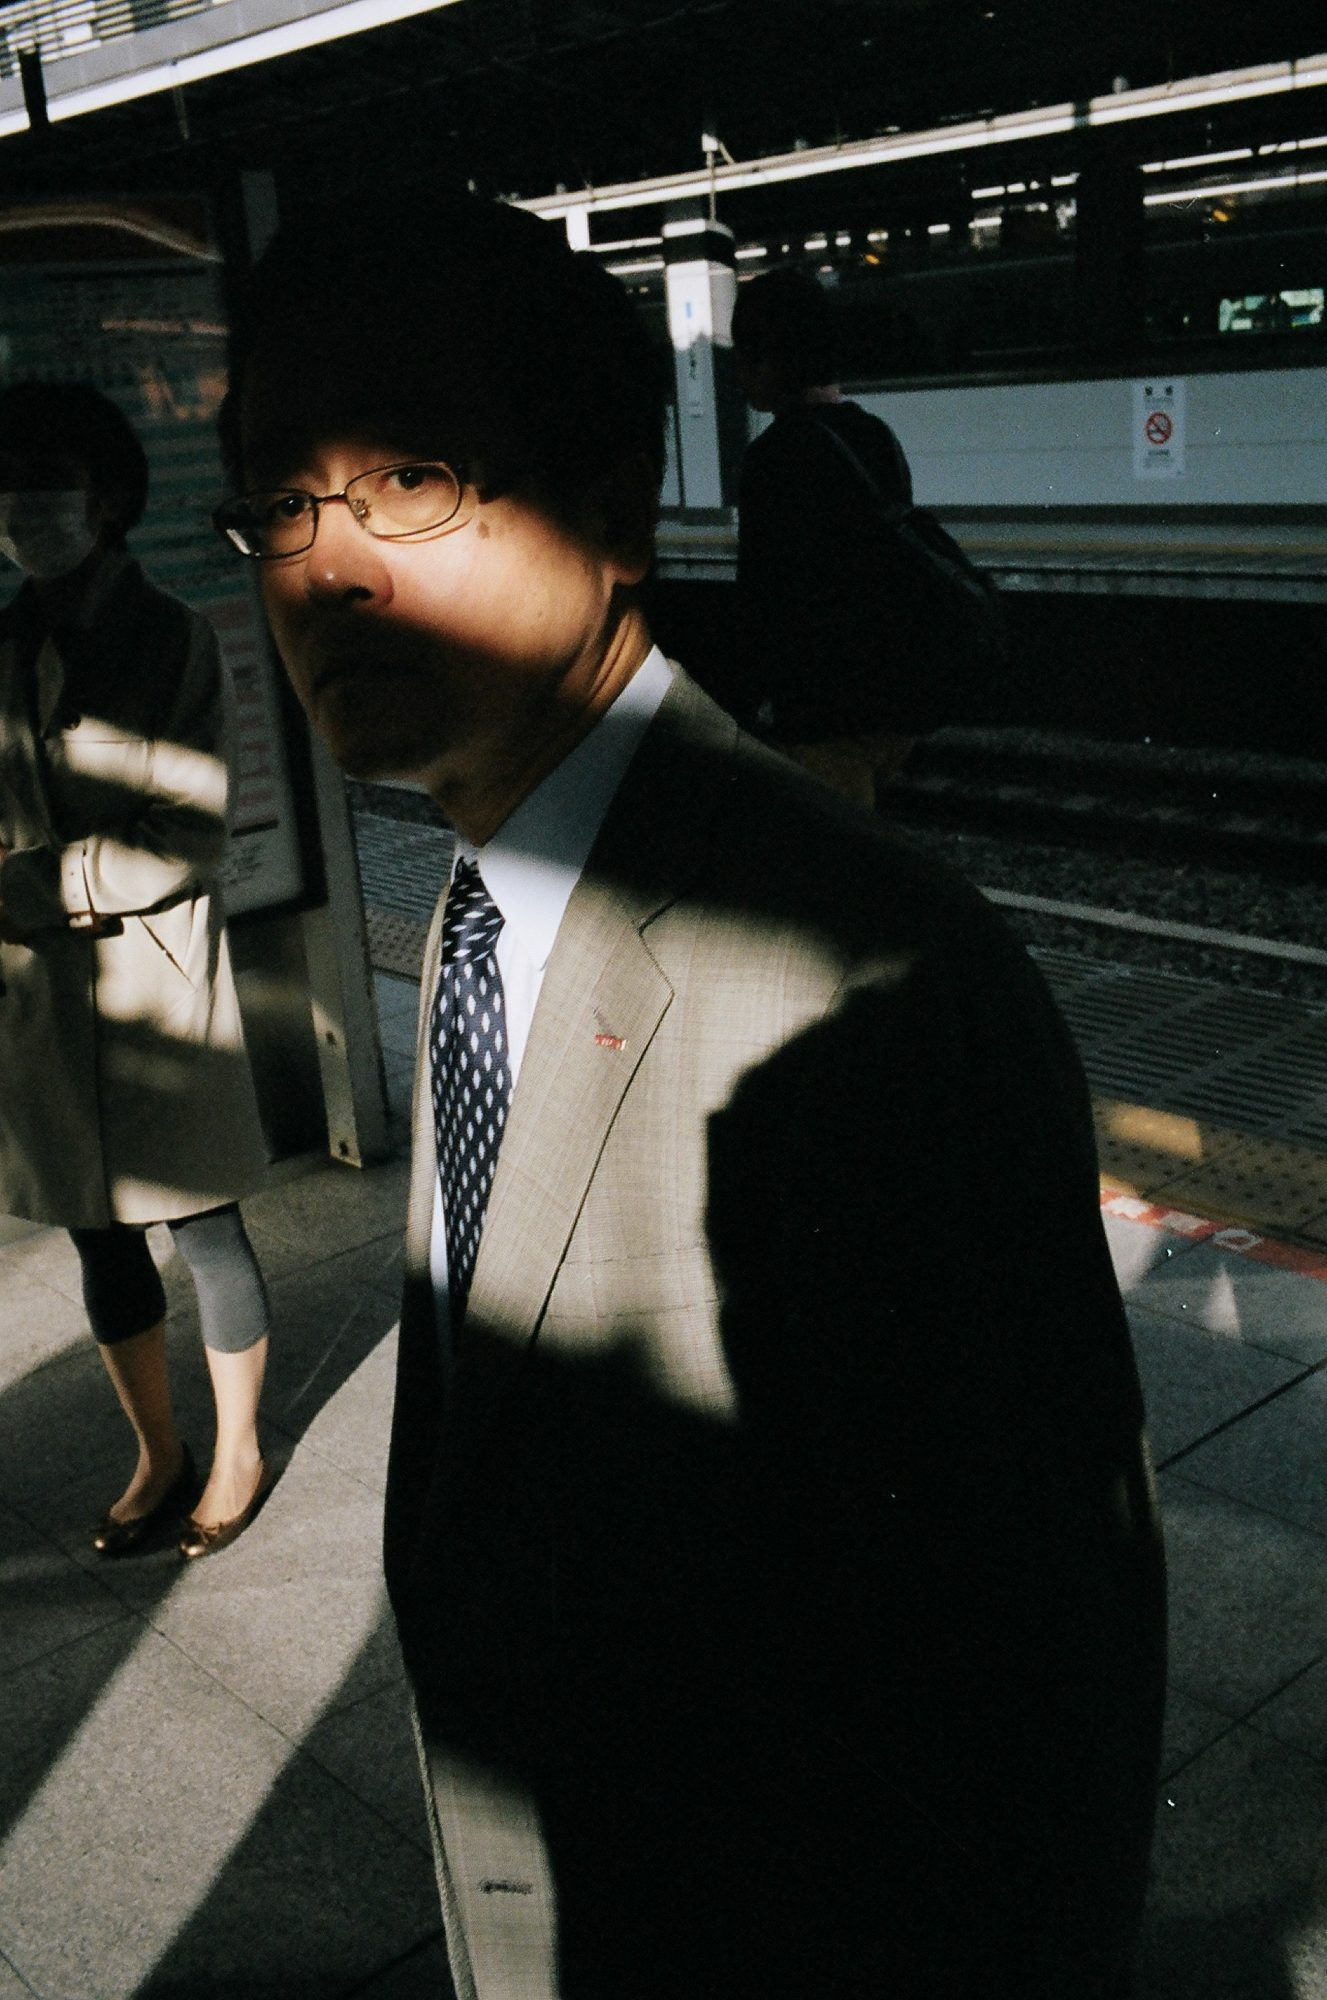 eric-kim-street-photography-suits-project-kodak-portra-400-film-18